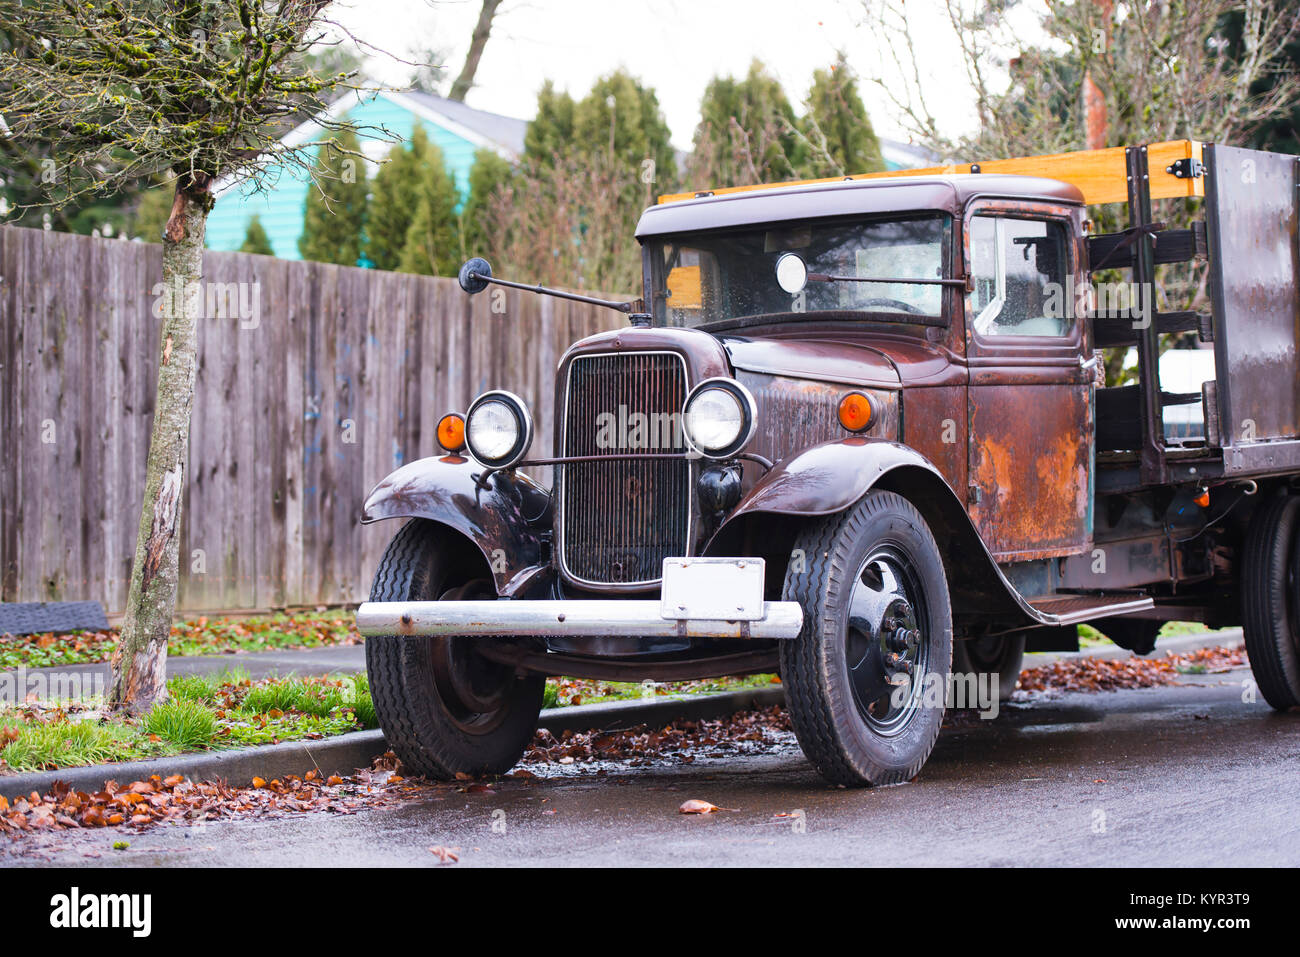 An old rarity rusty truck in working condition with a vintage design stands on the street under a fence in rainy - Stock Image